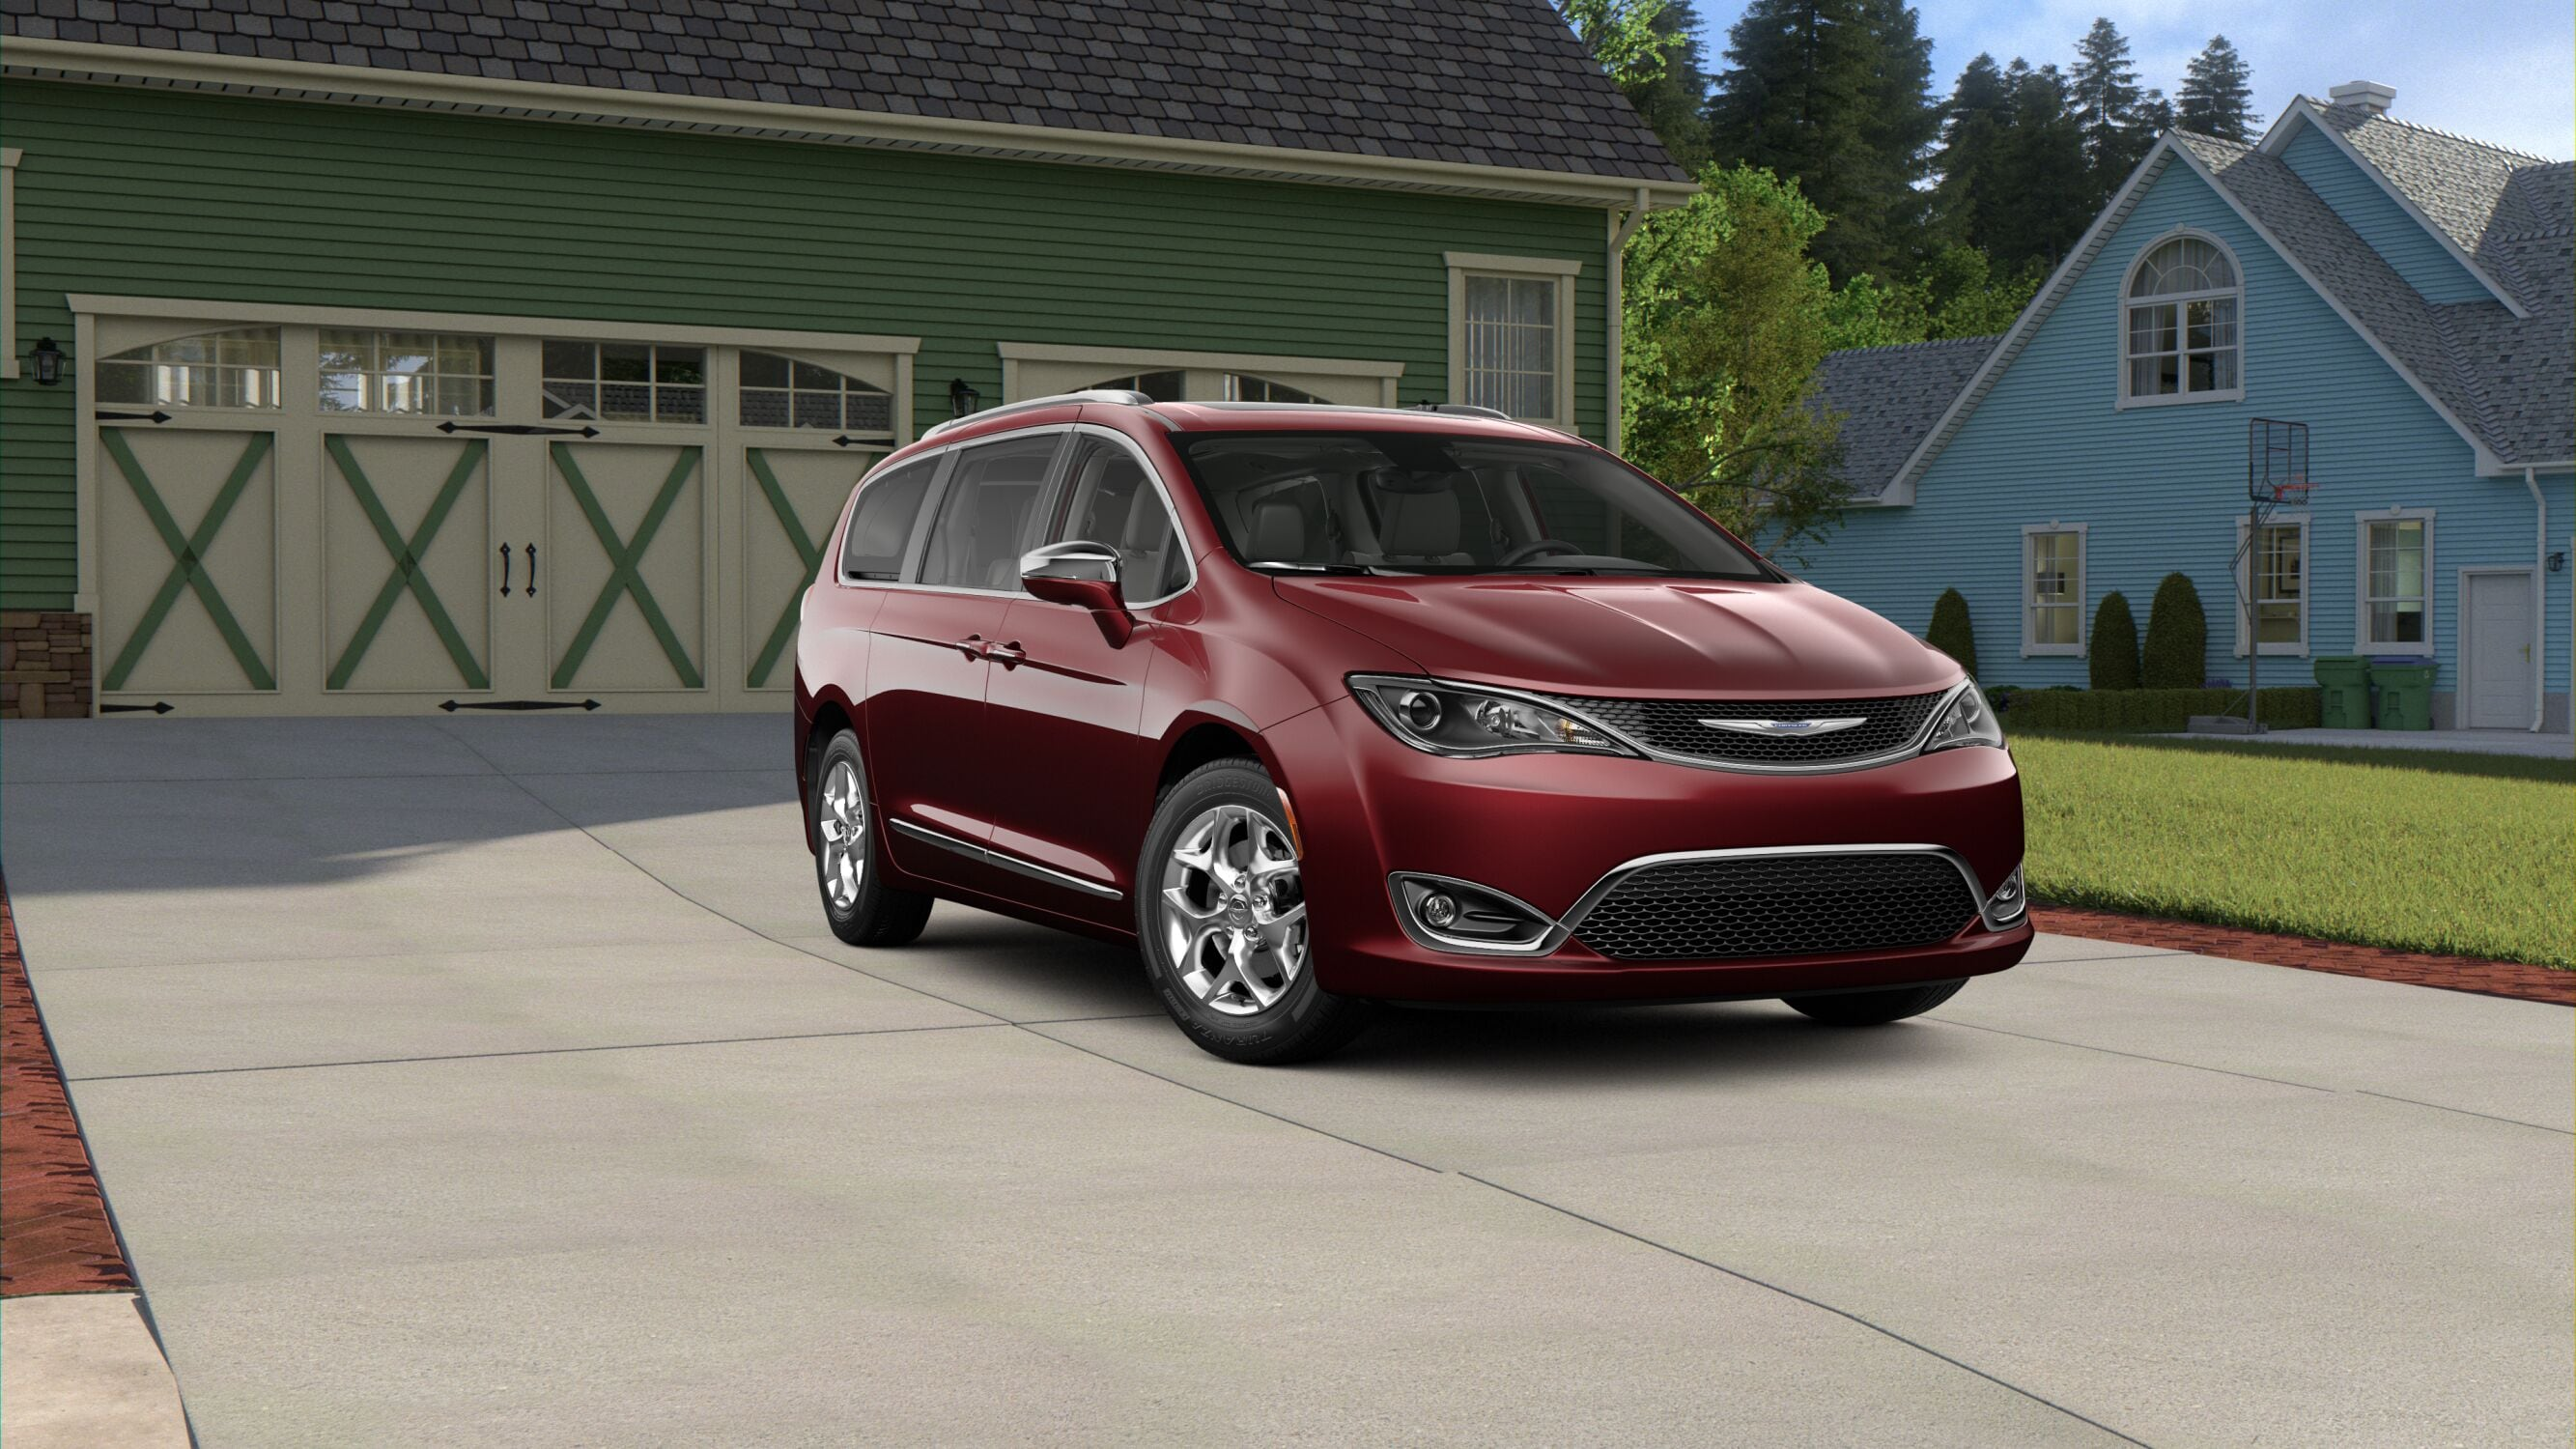 2019 Chrysler Pacifica Exterior Front Picture